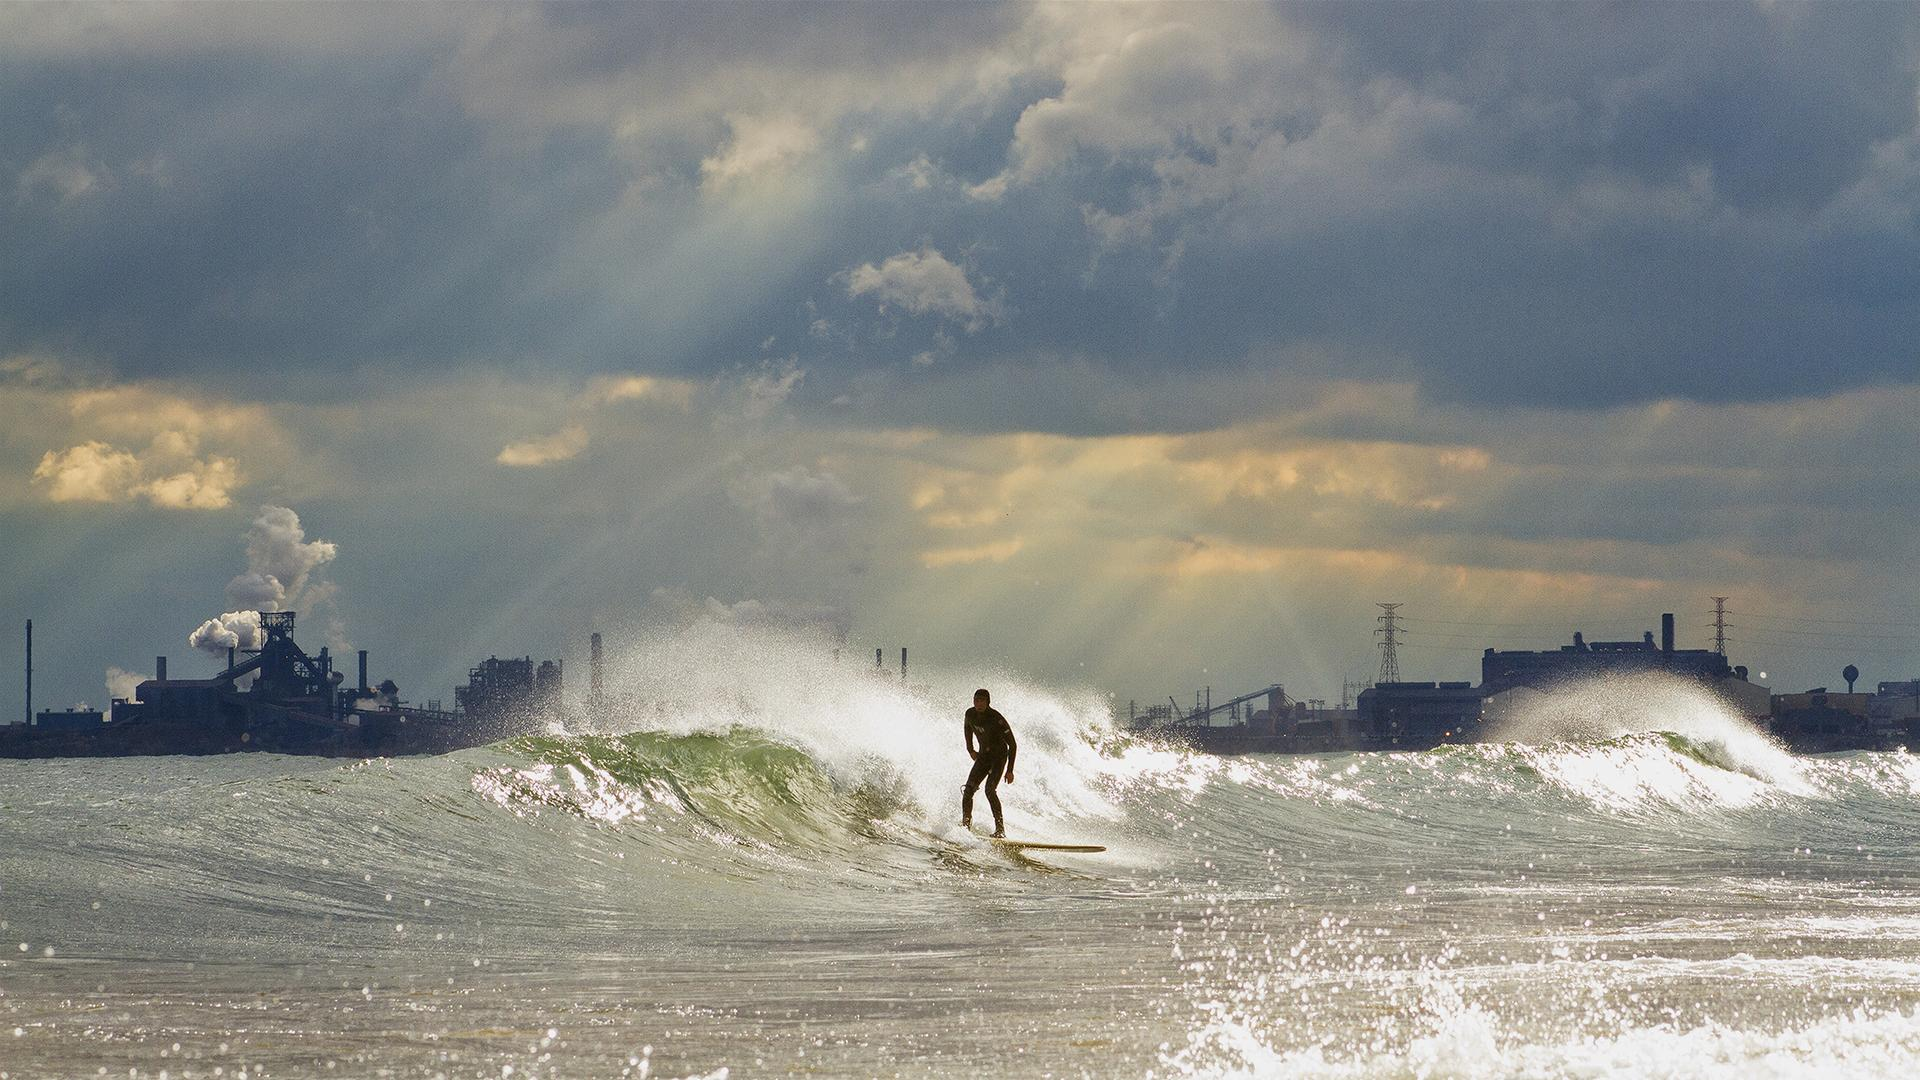 A surfer rides the waves on the south end of Lake Michigan. (Credit: Mike Killion)